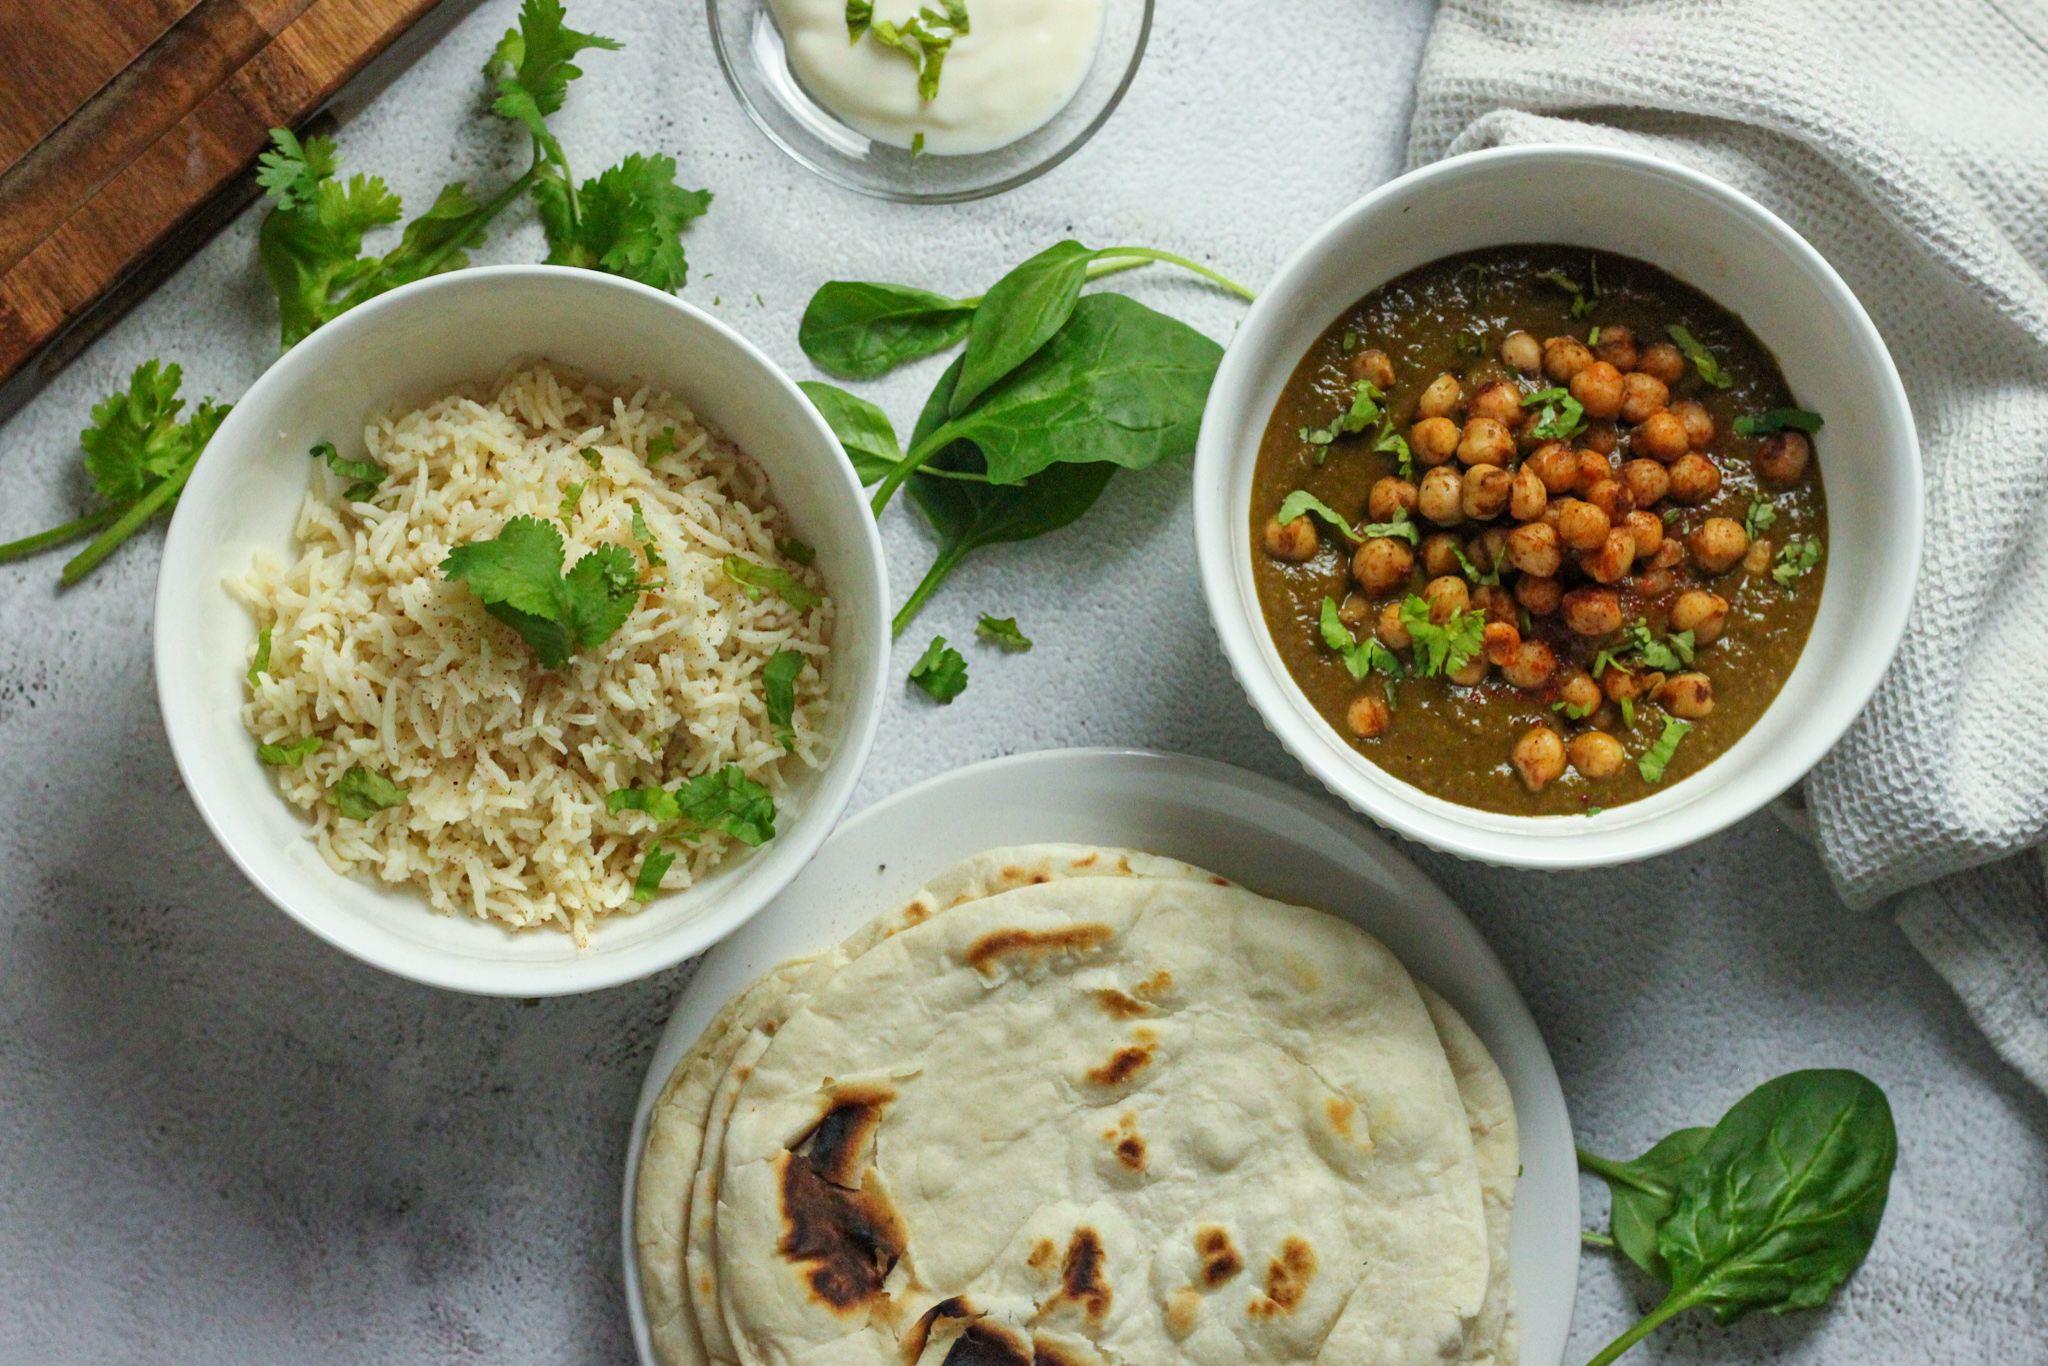 Insanely Delicious Chickpea Curry made with Spinach